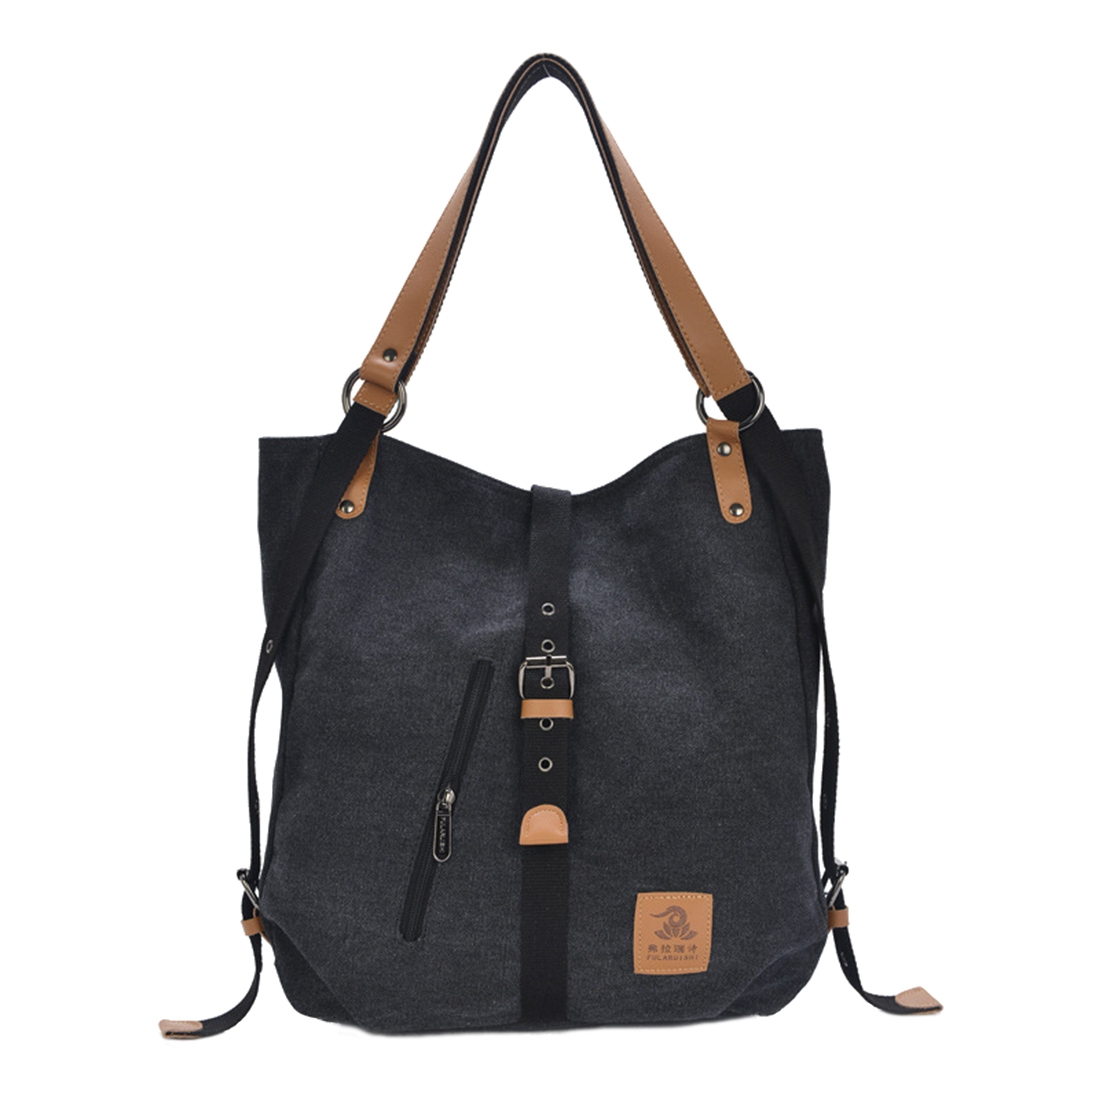 And Canvas Multifunctional Messenger Bag Shoulder Bag